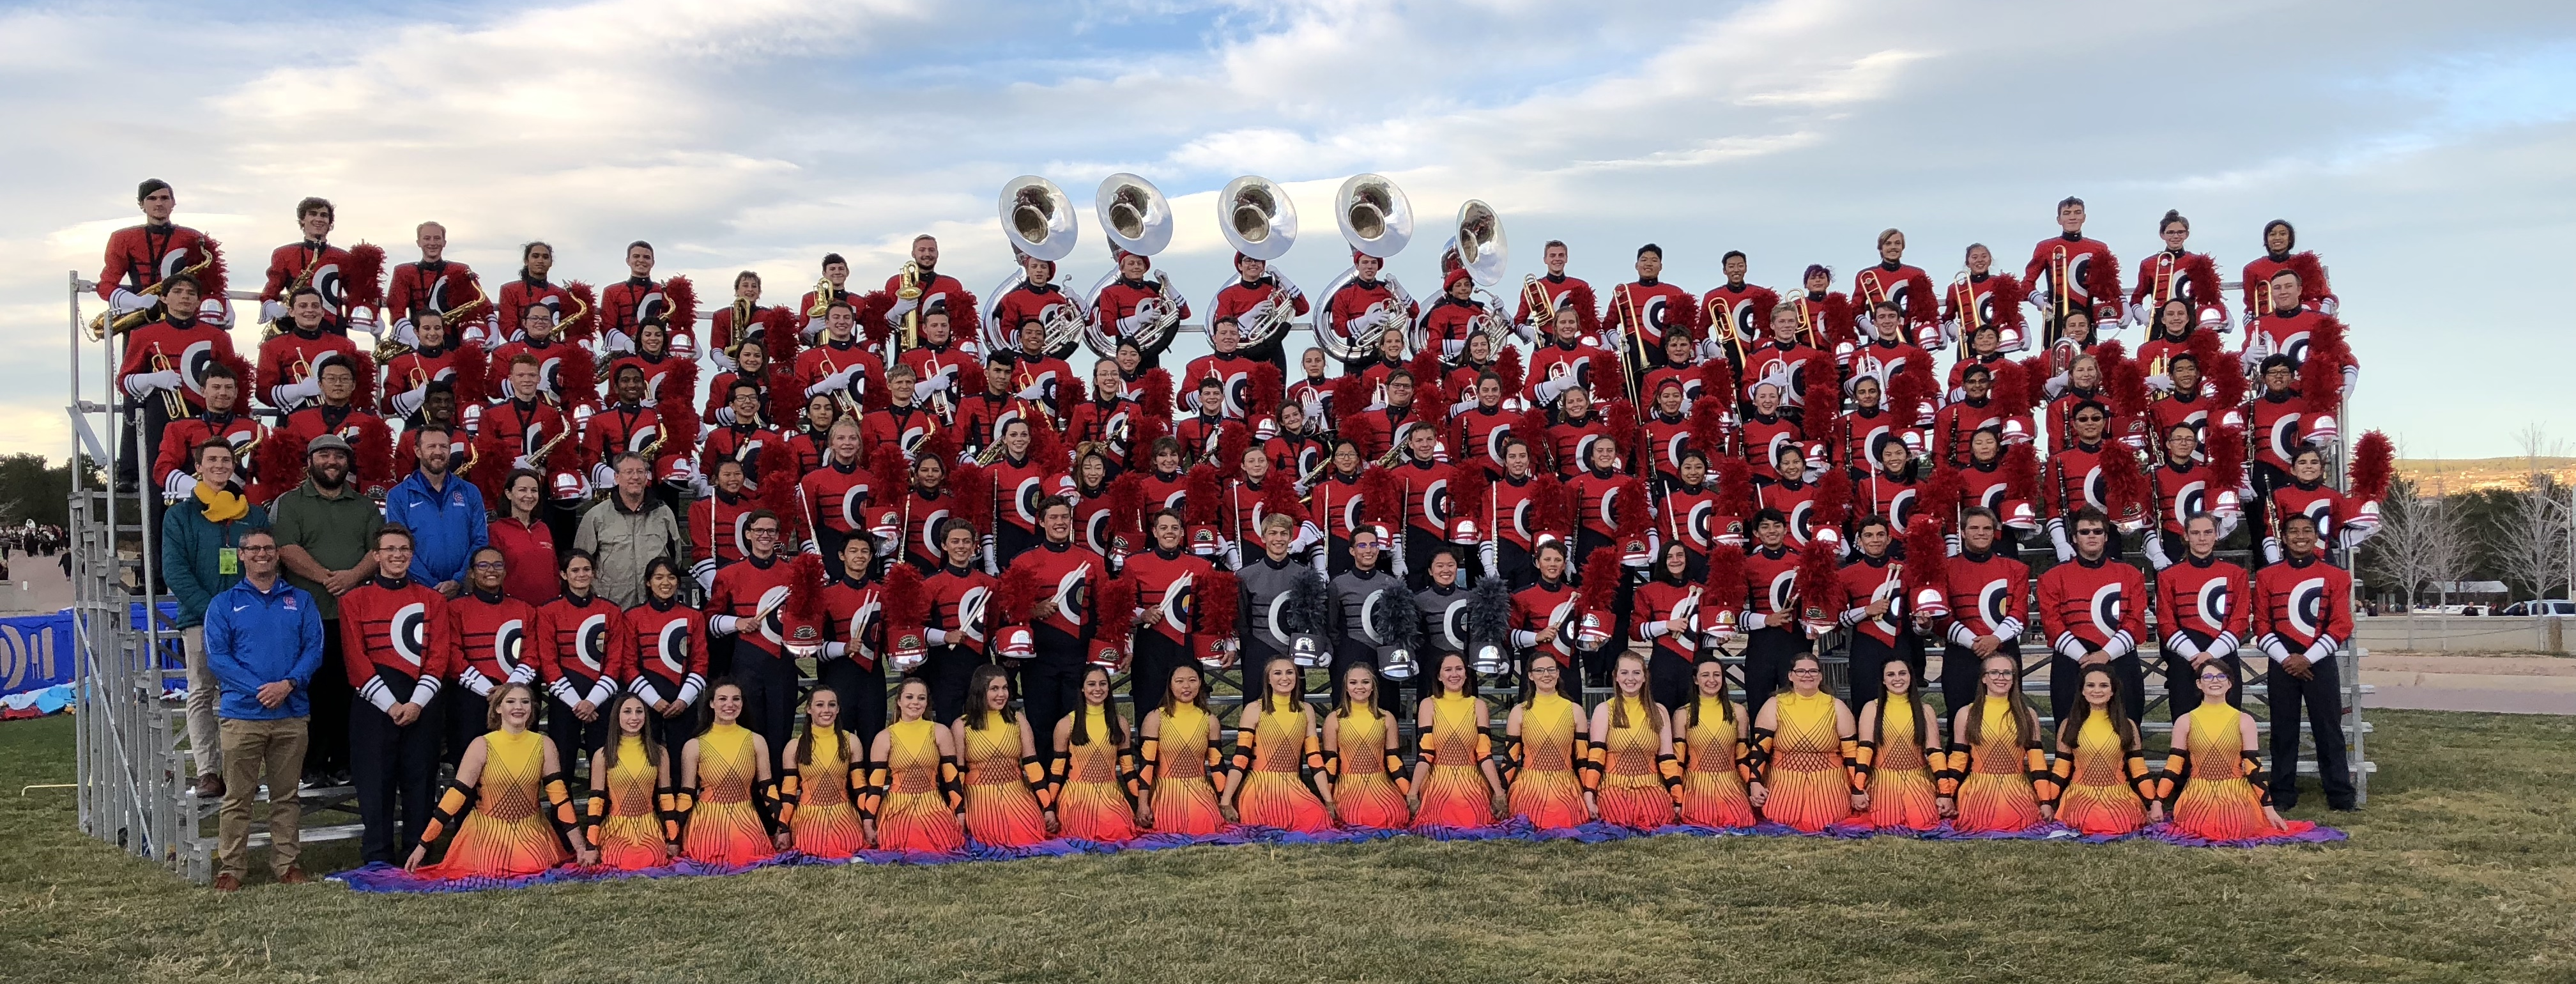 CCHS Marching Band 2016